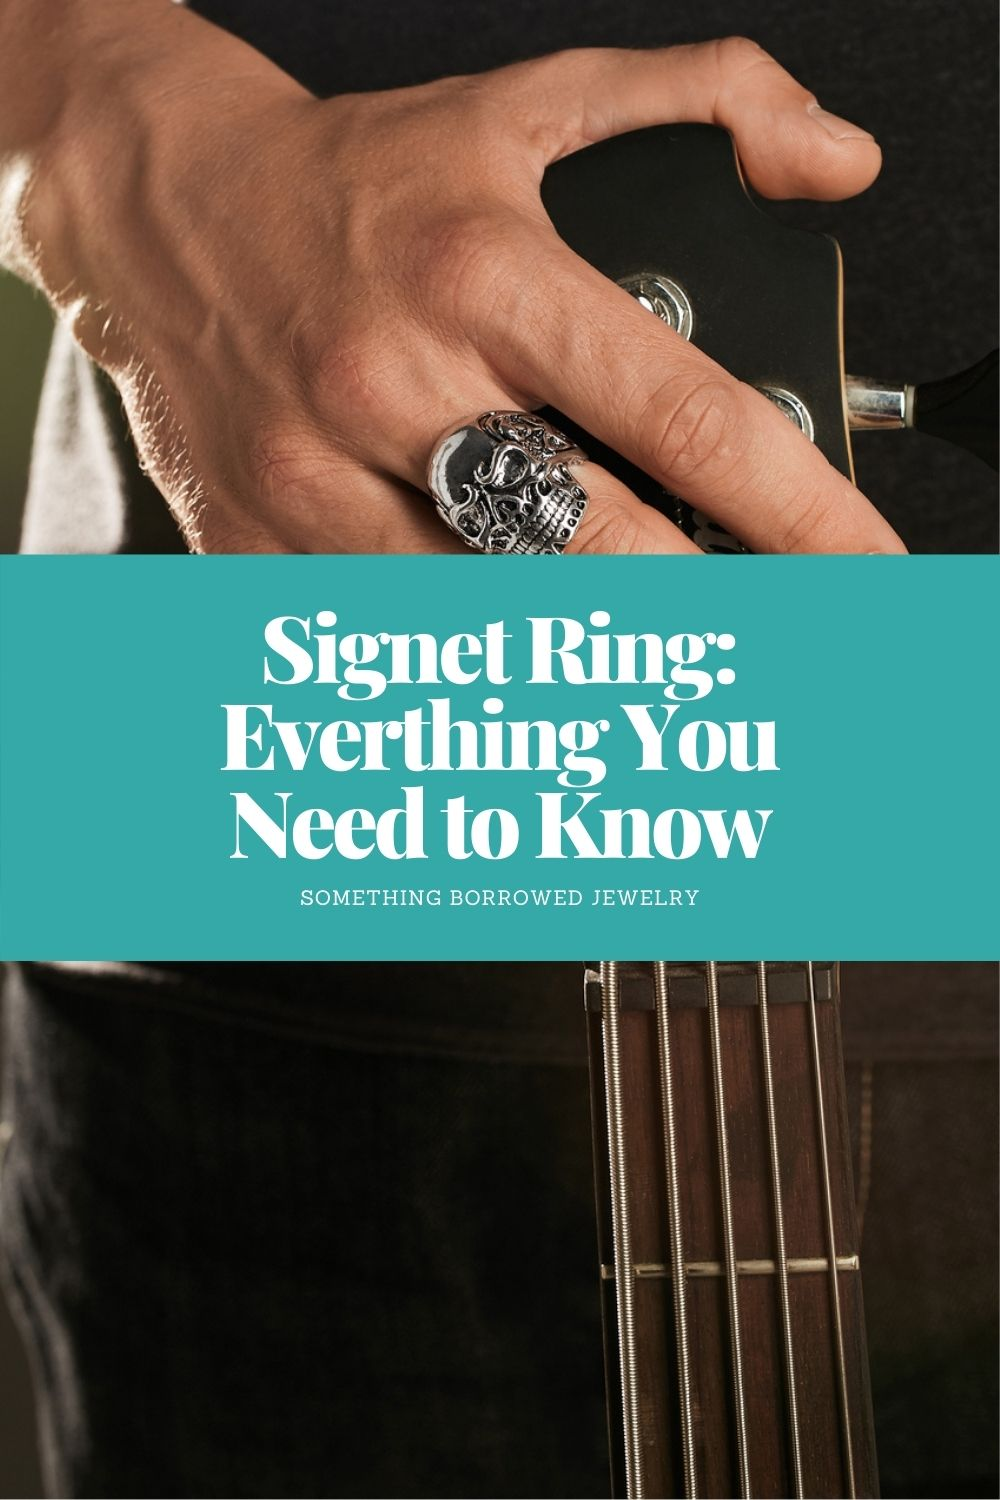 Signet Ring Everthing You Need to Know pin